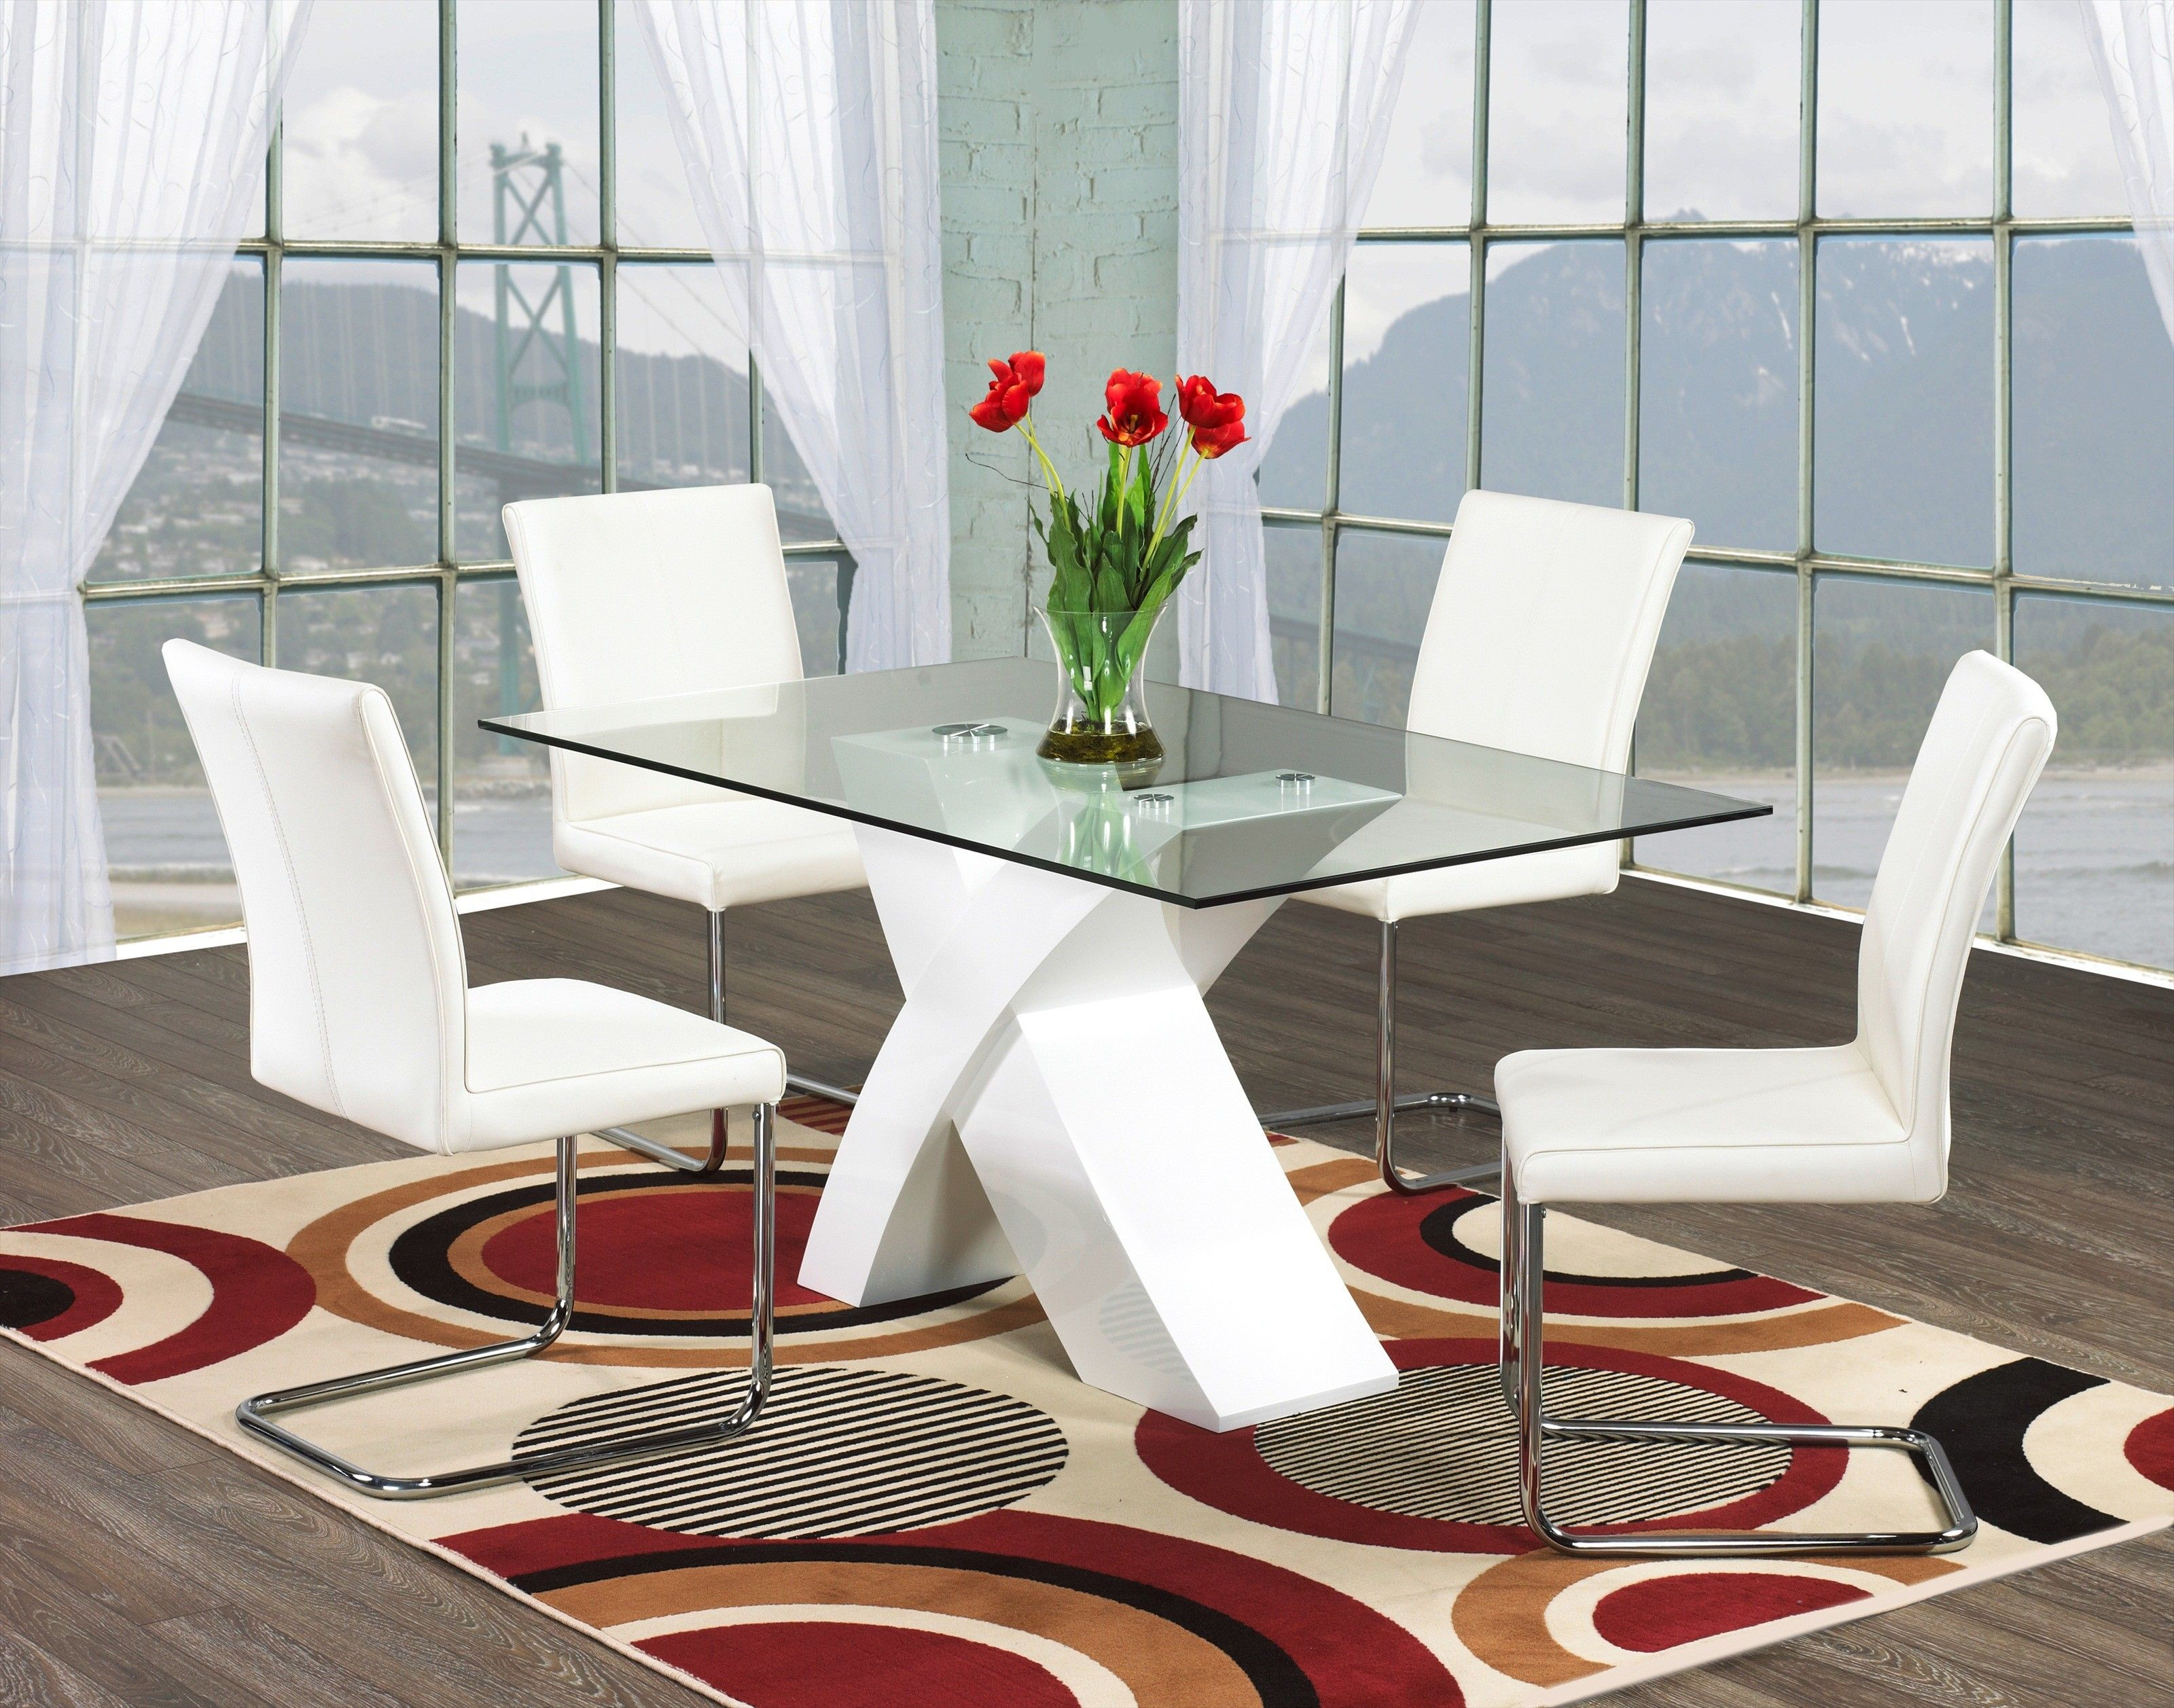 Modern White Lacquer  Arrow Furniture  Home Decor  Pinterest New Pinterest Dining Room Tables Design Inspiration